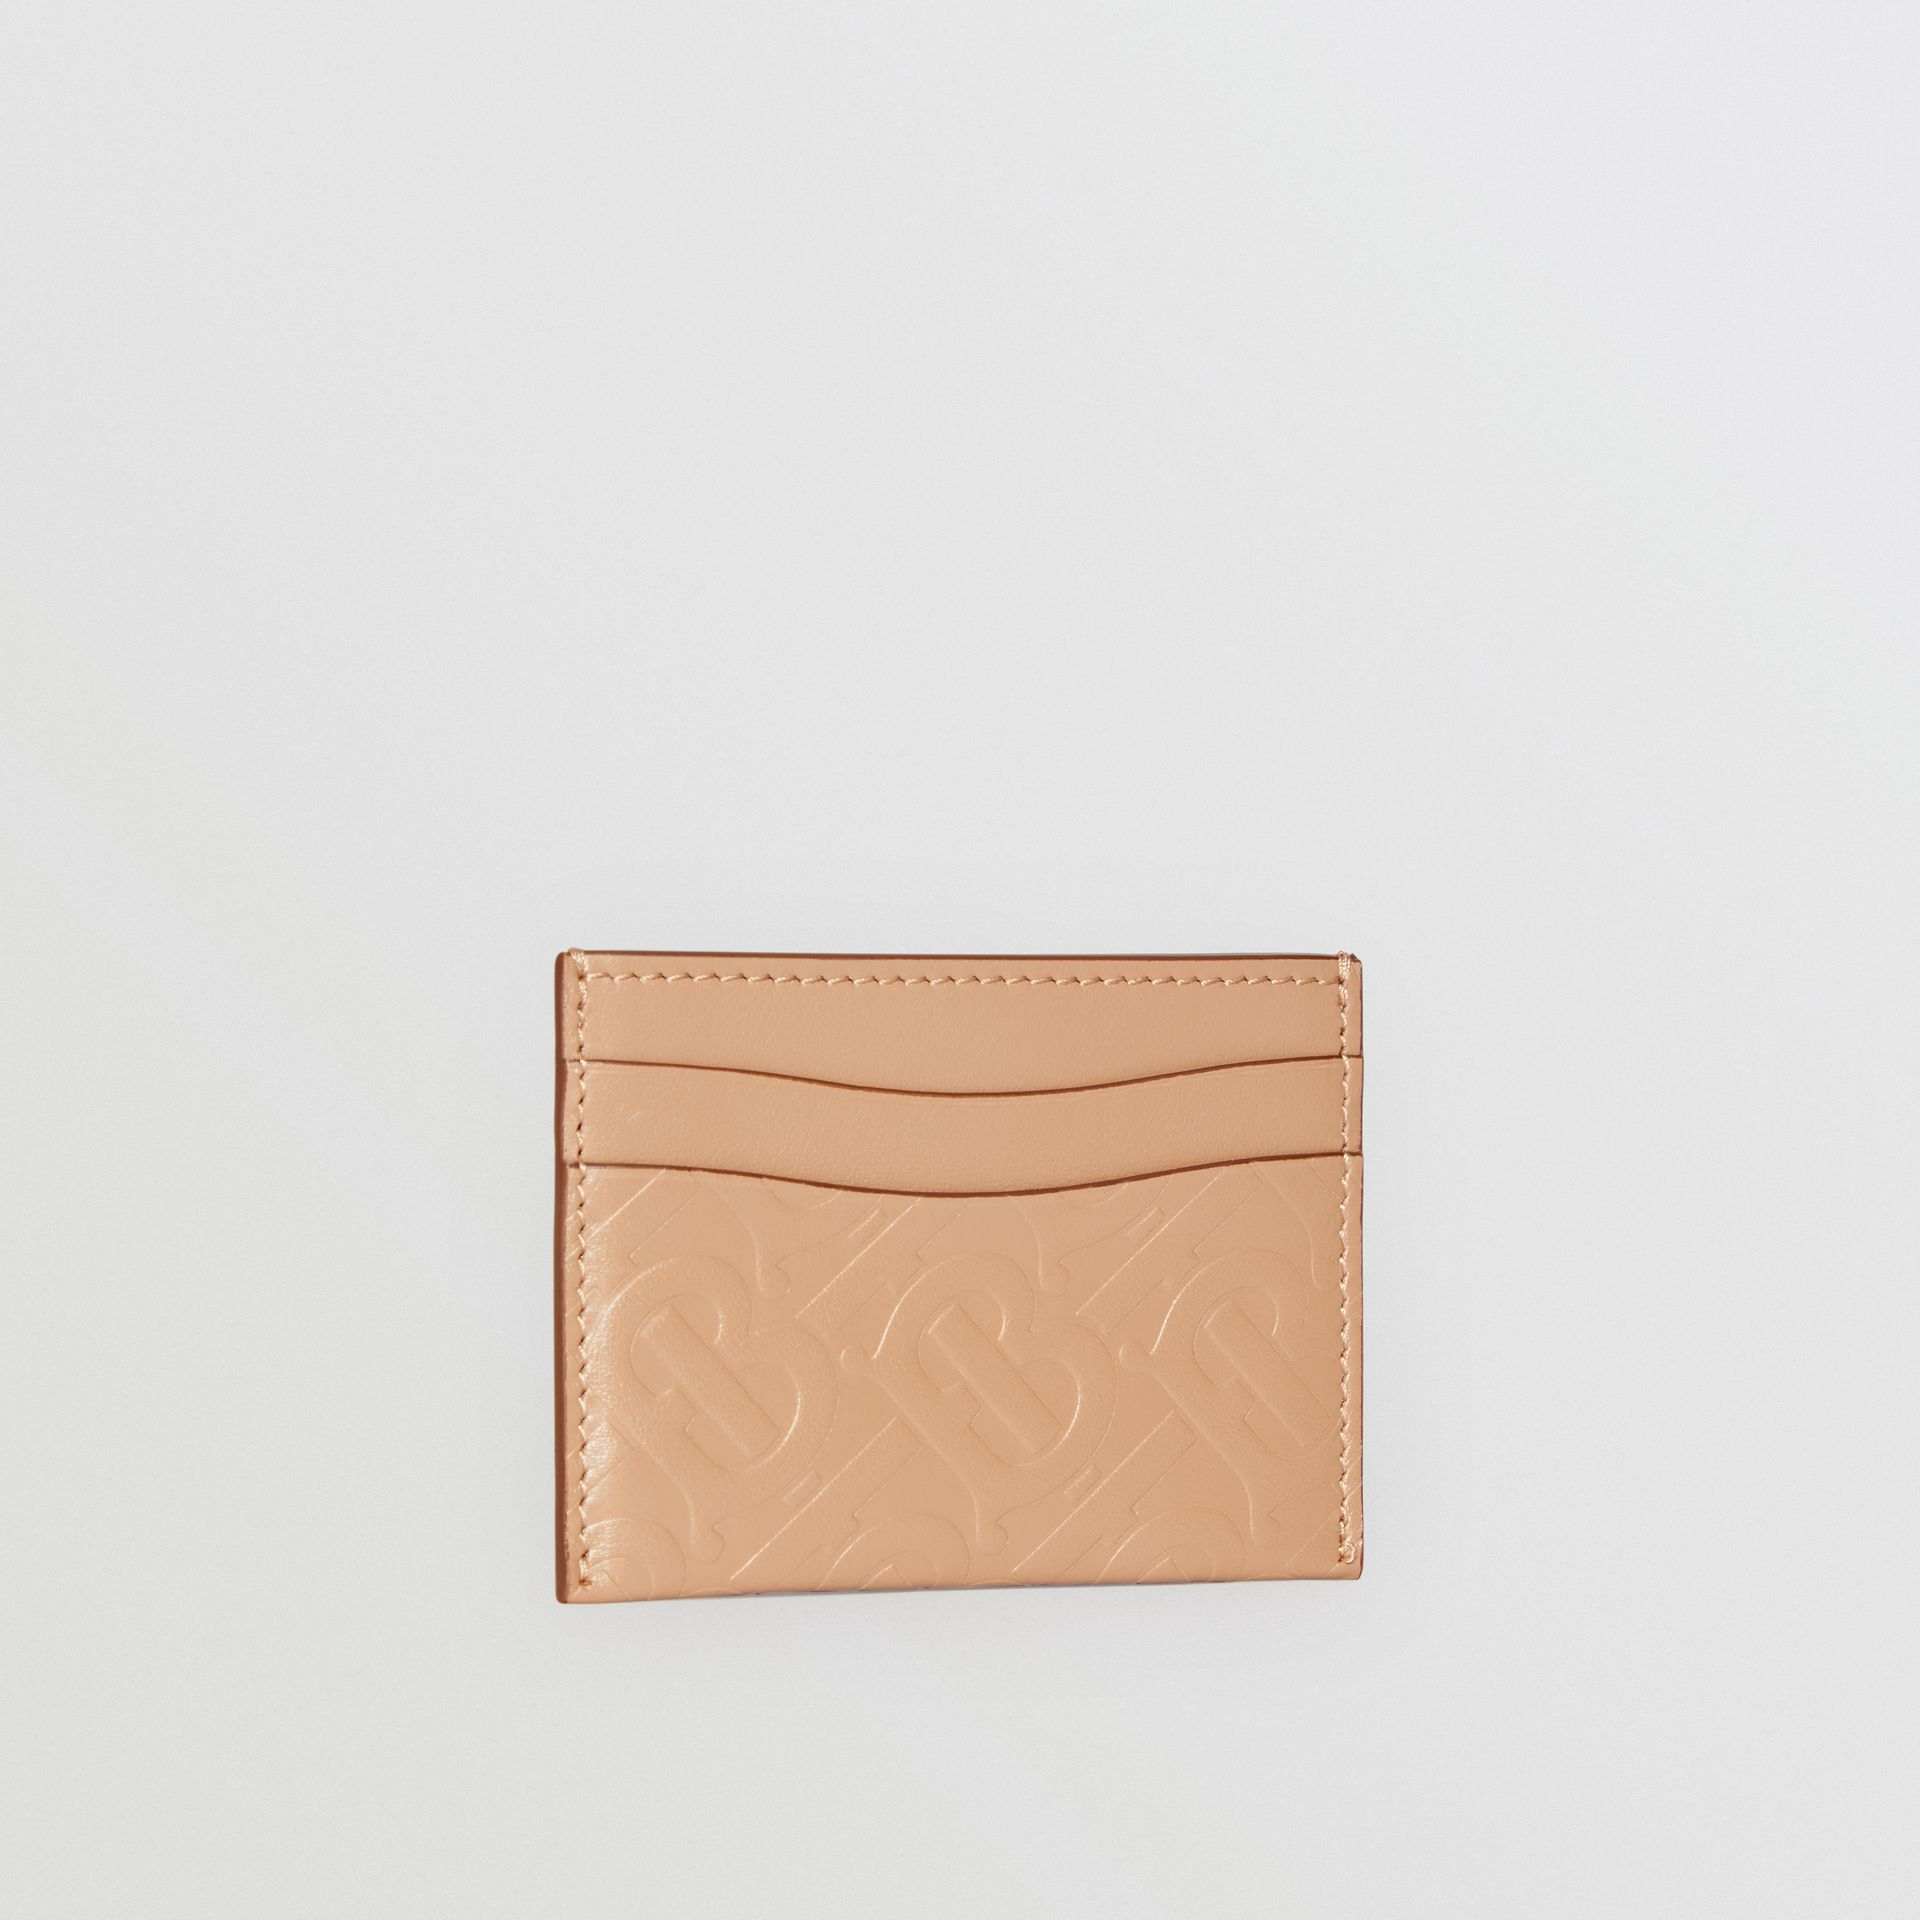 Monogram Leather Card Case in Light Camel - Women | Burberry - gallery image 3